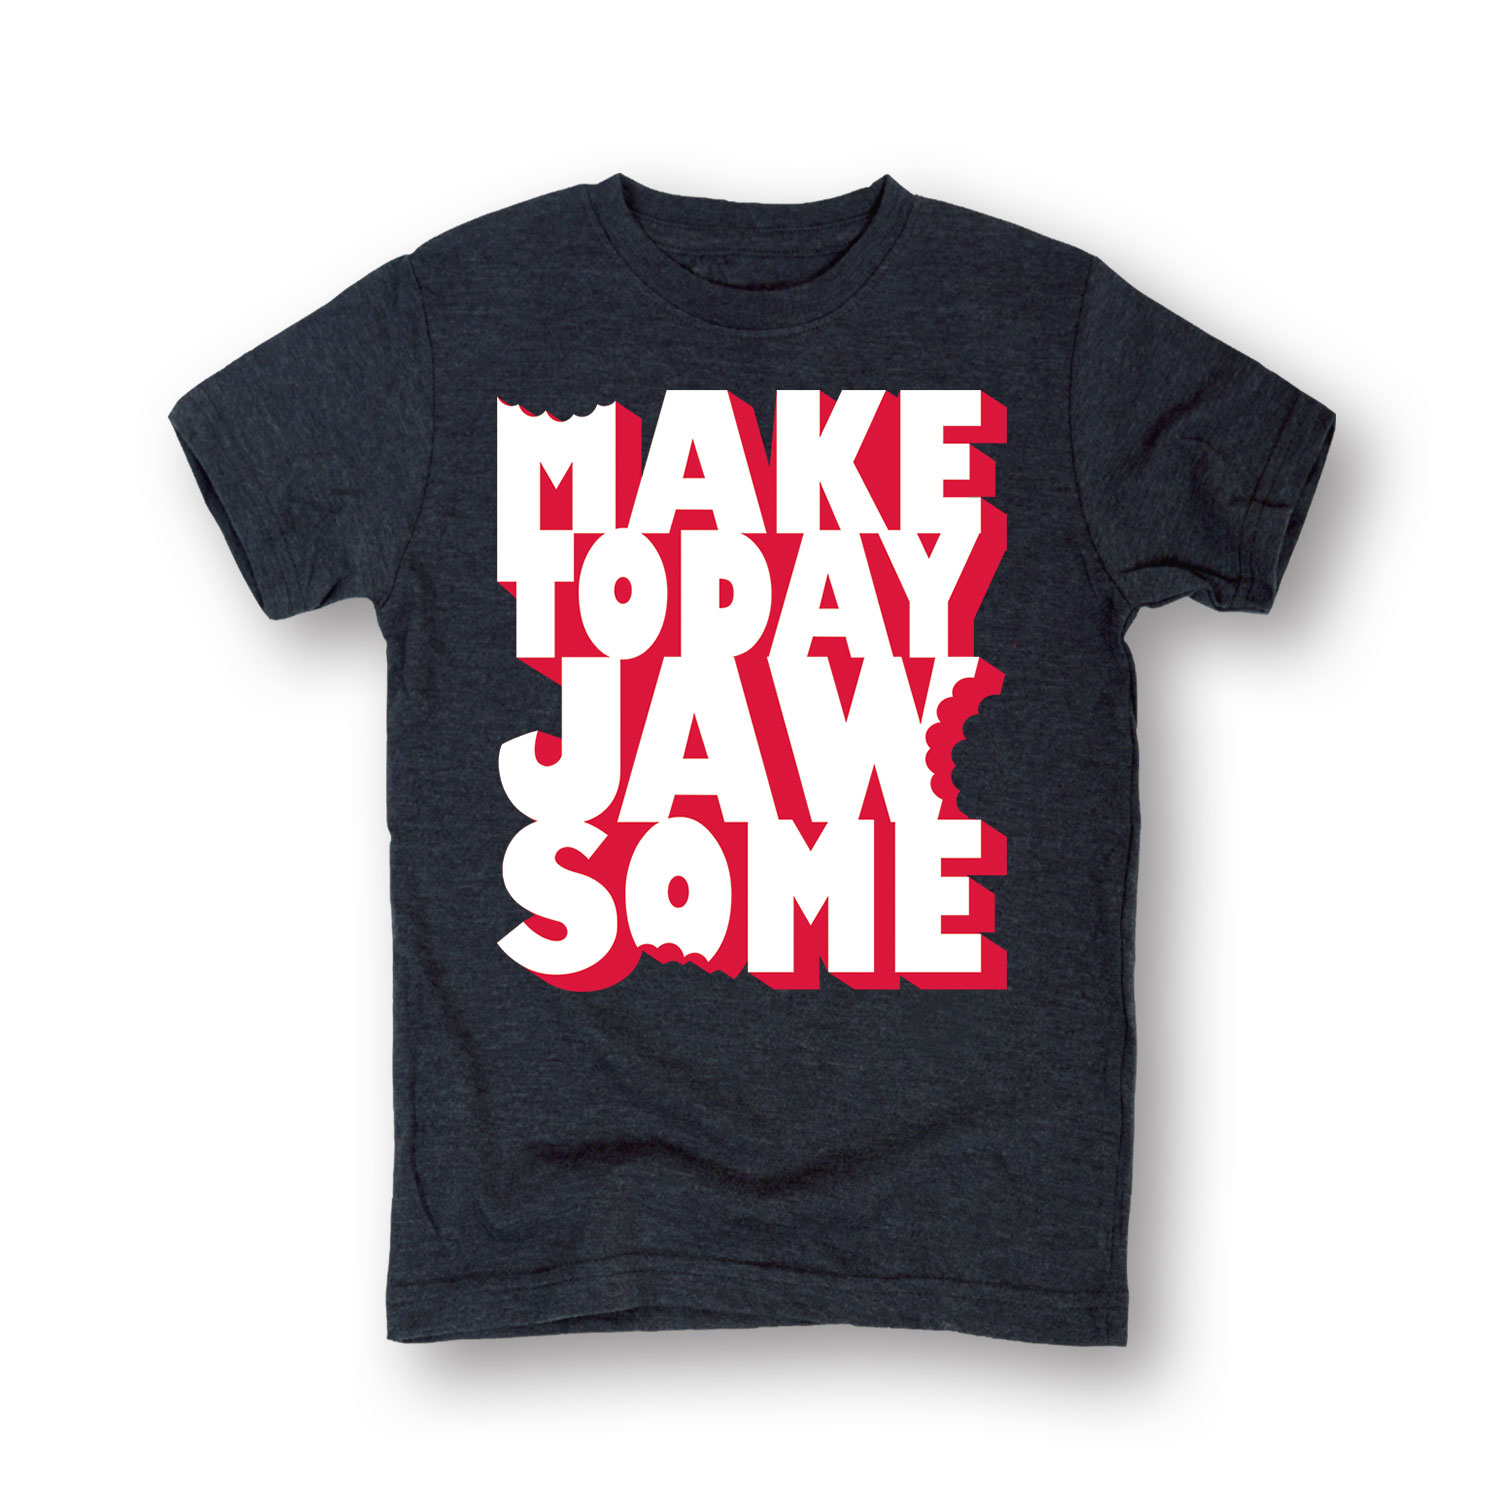 Make Today Jawsome' 3D Print T-Shirt With Bite Marks-Toddler T-Shirt